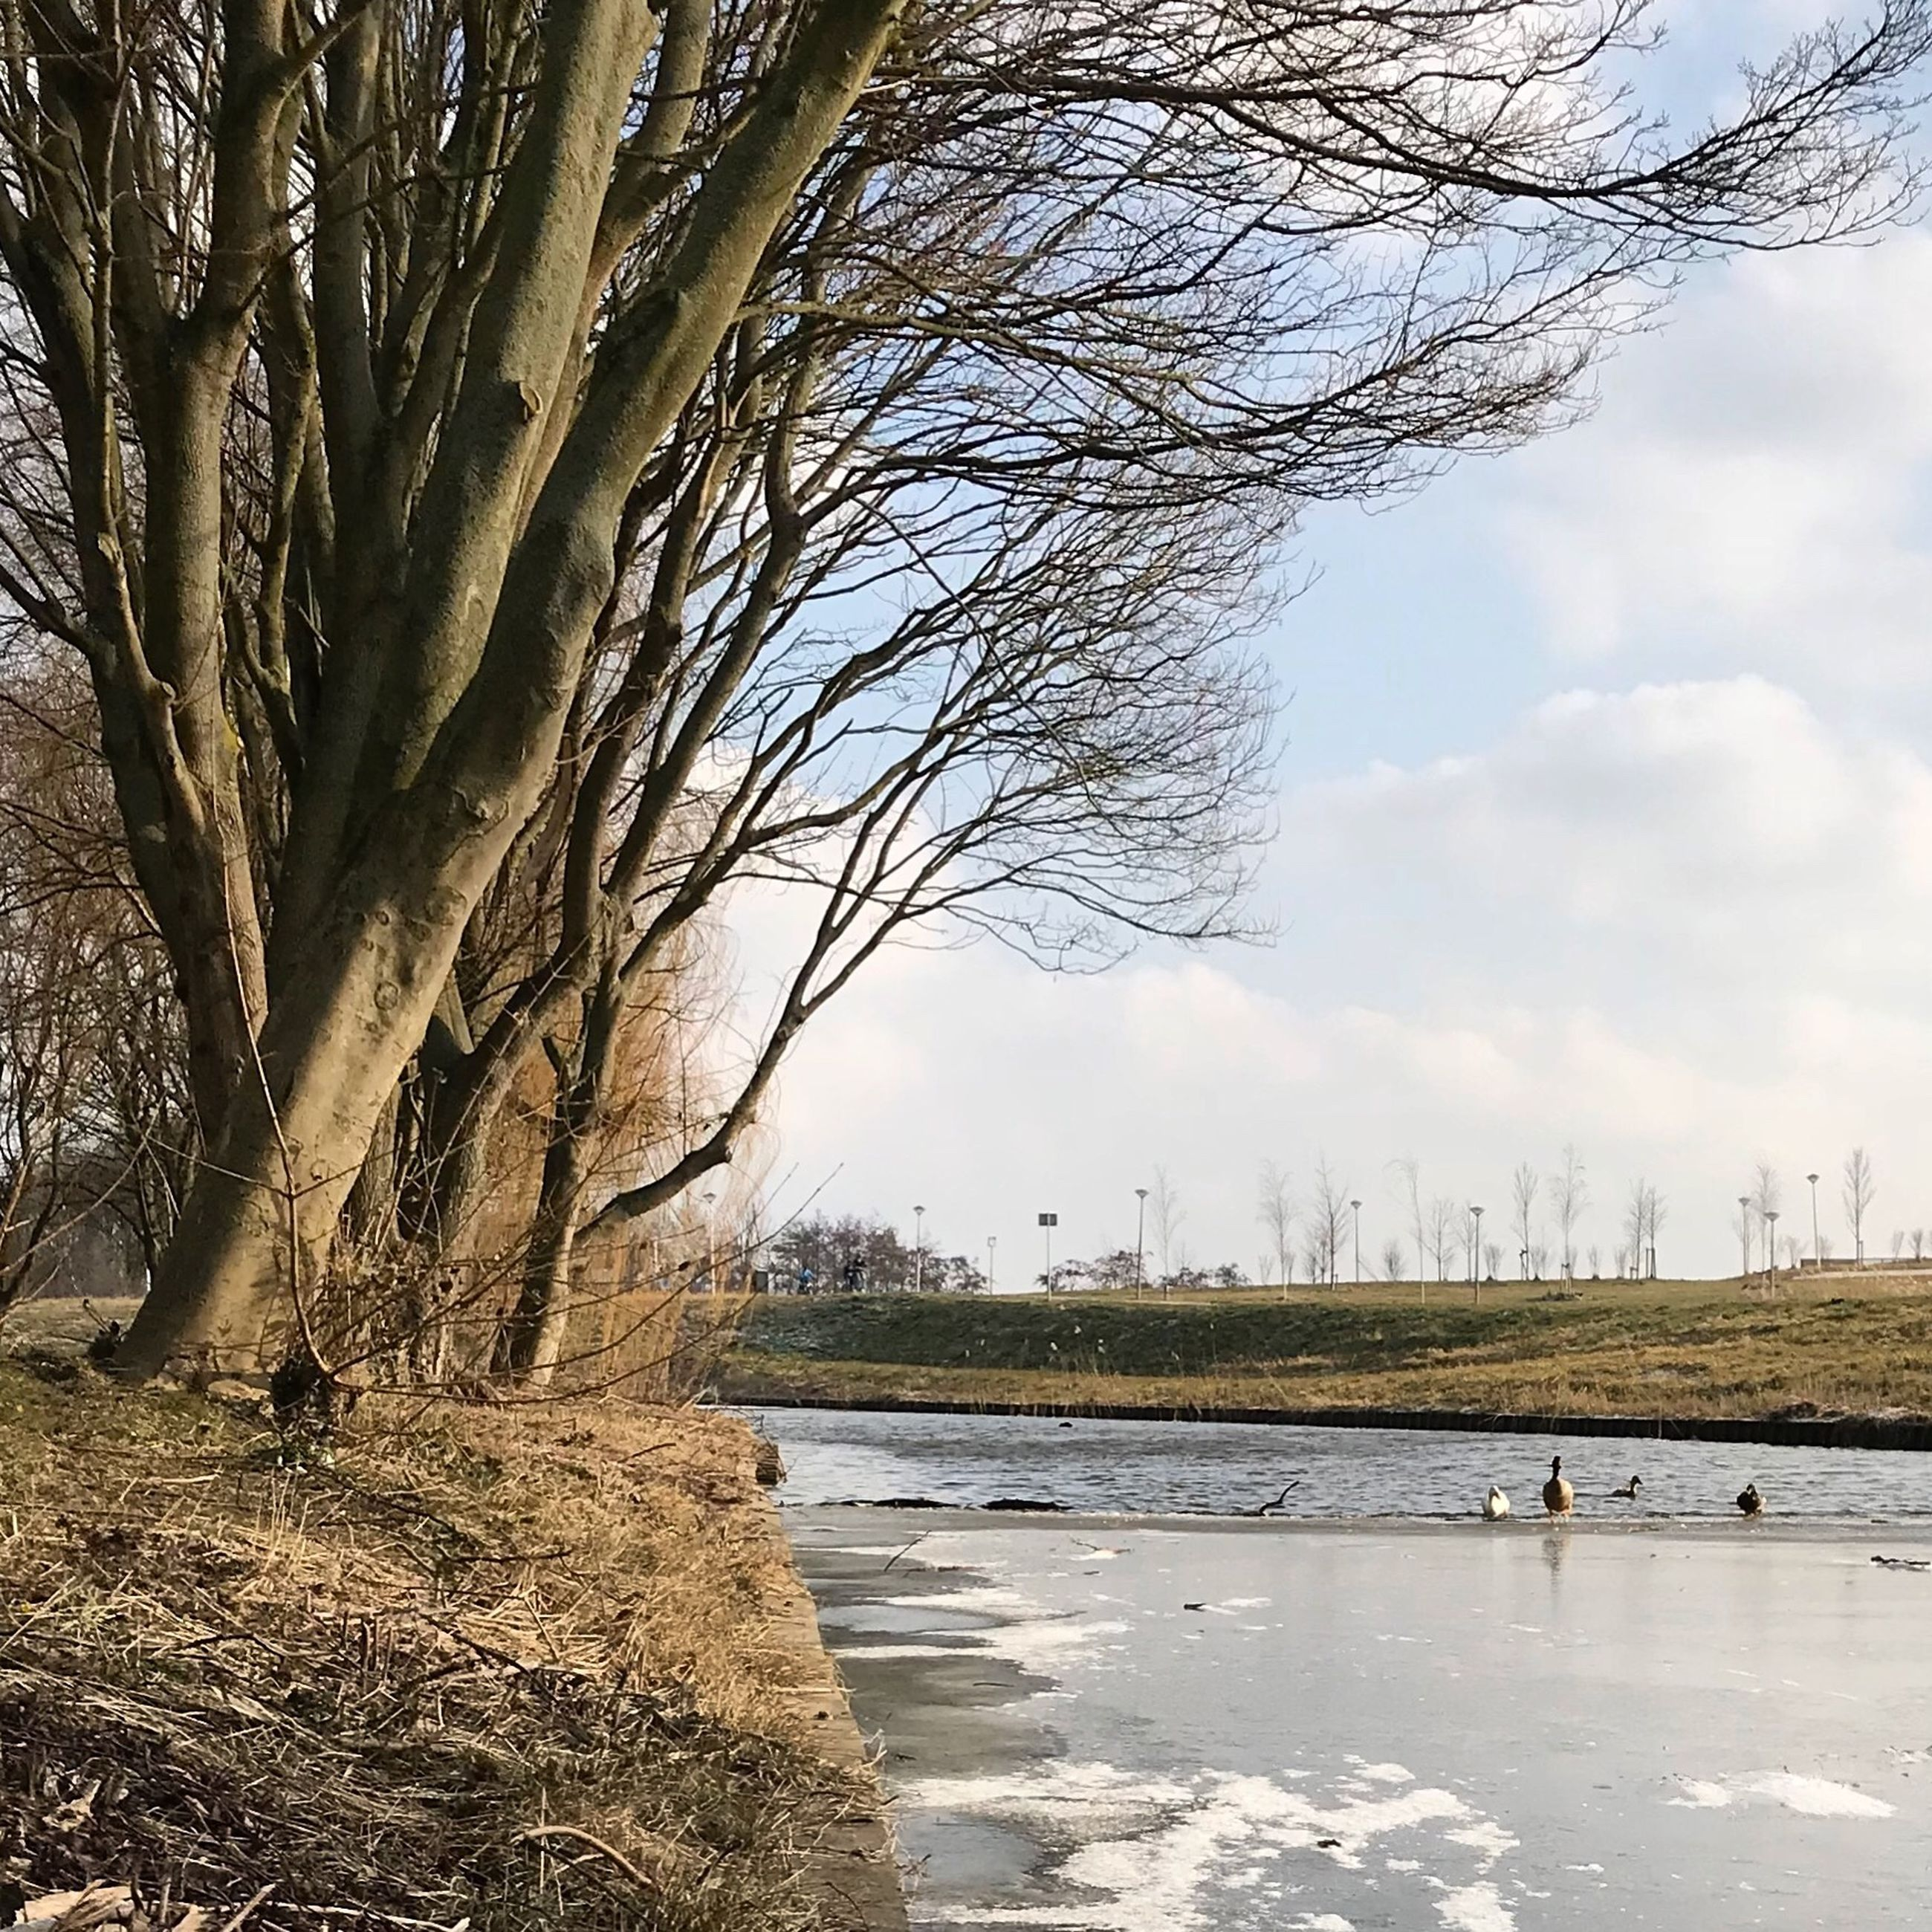 tree, water, bare tree, nature, beauty in nature, sky, day, branch, scenics, tranquility, tranquil scene, outdoors, no people, lake, growth